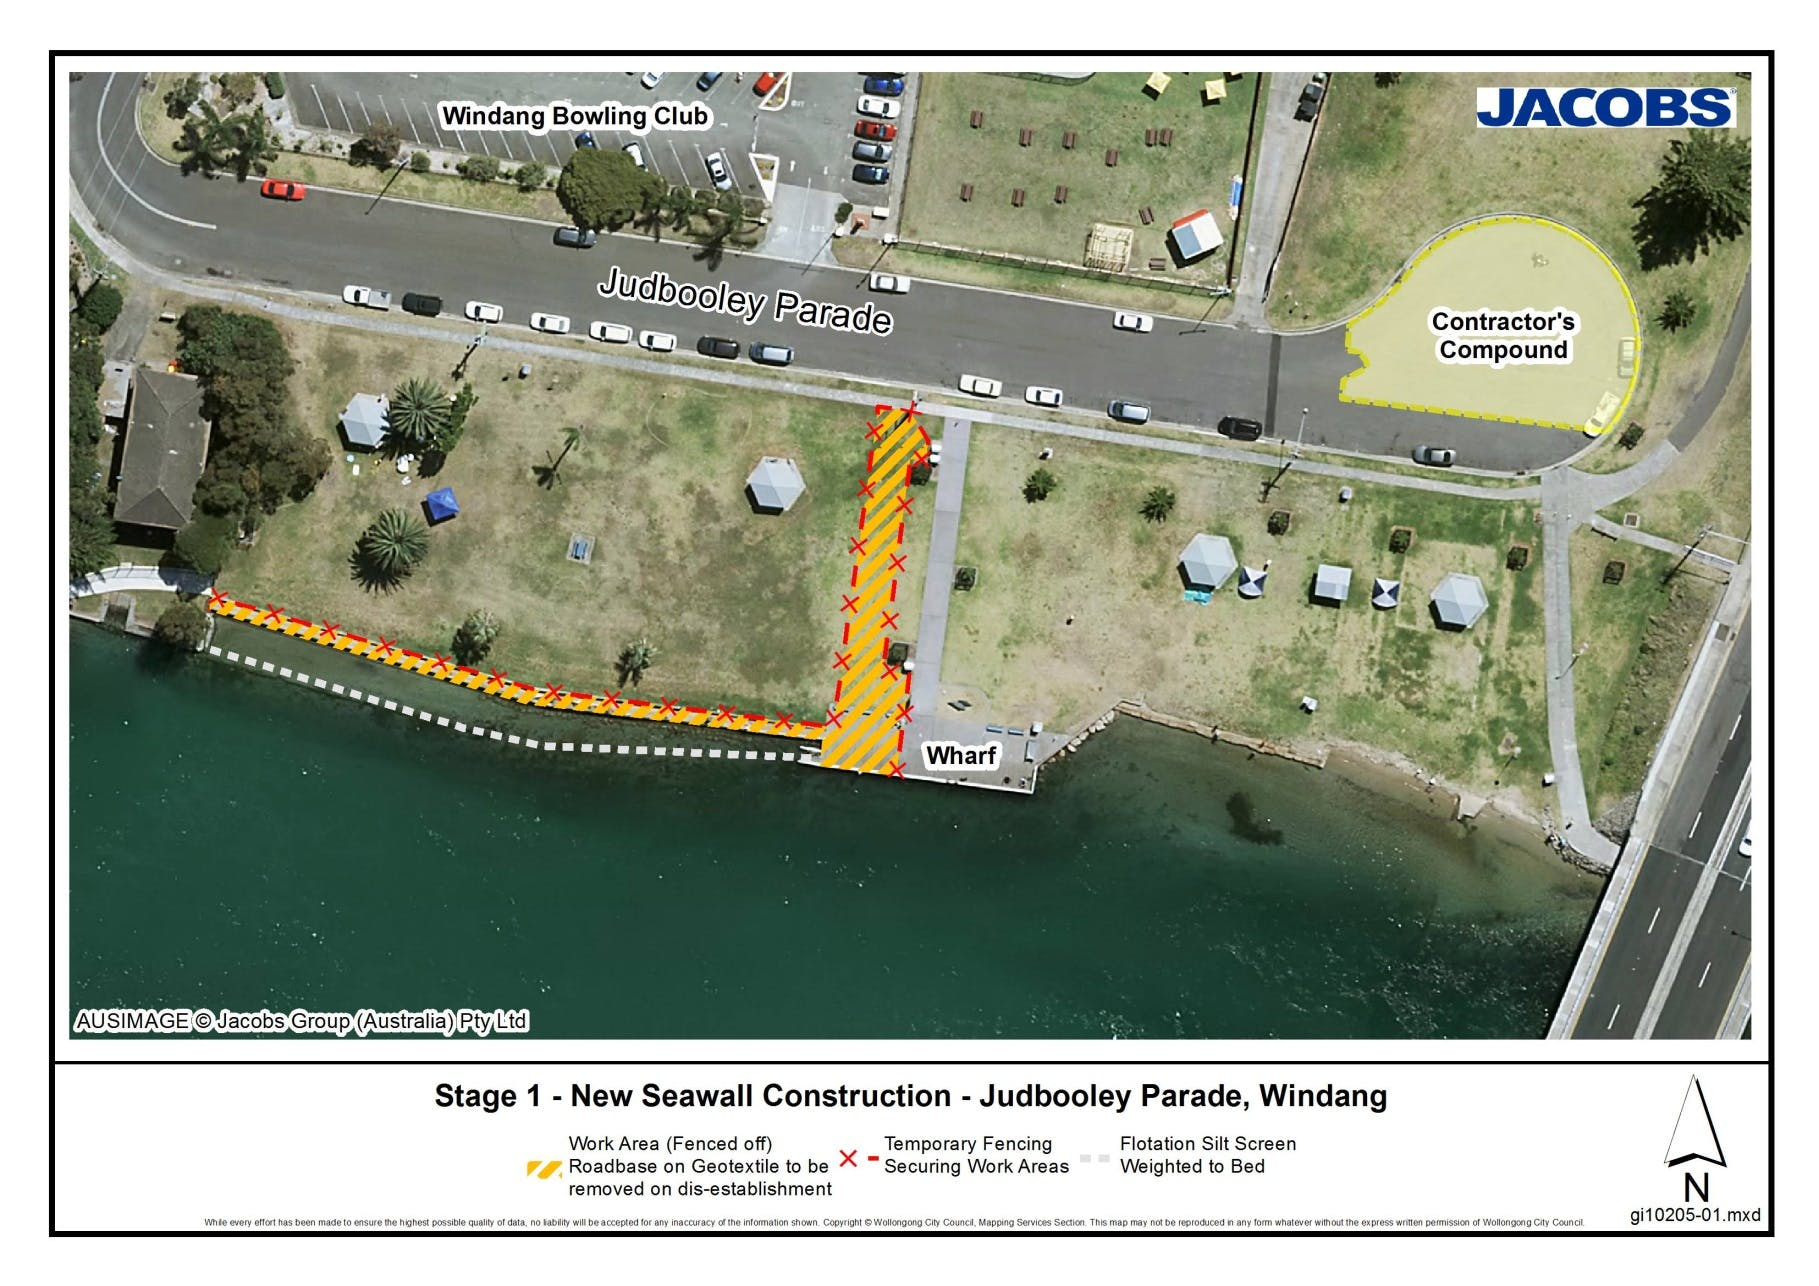 Stage 1: New Seawall Construction - Judbooley Parade, Windang